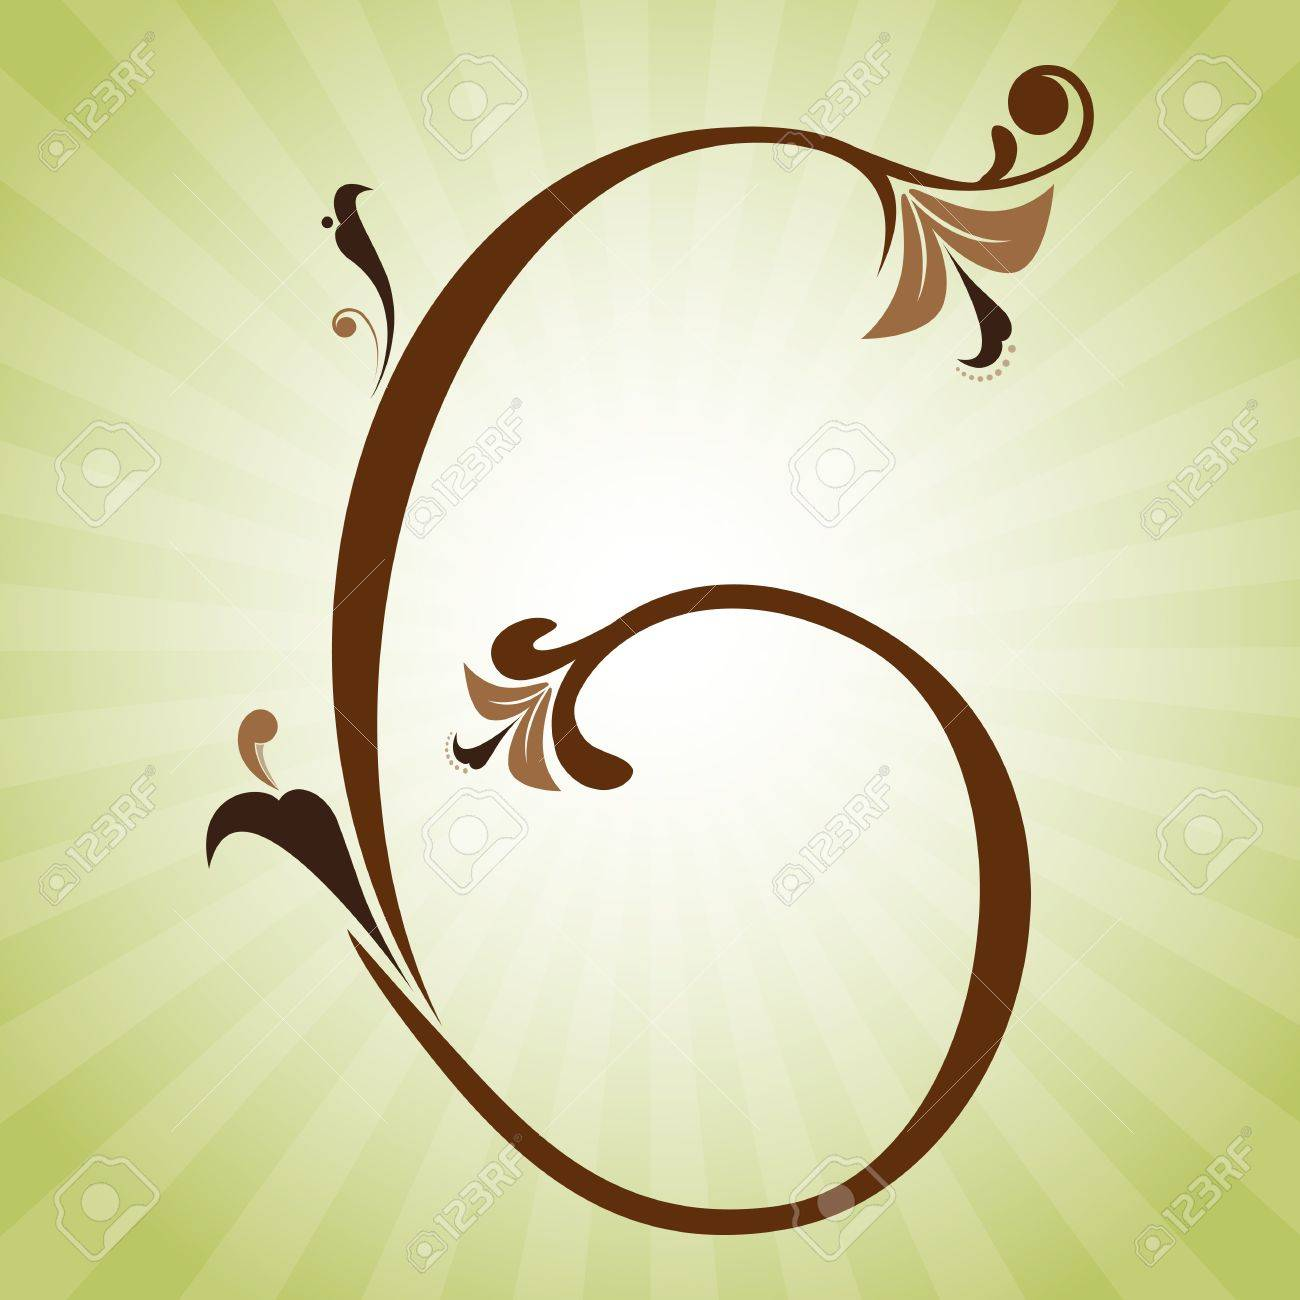 Decorative floral numbers with leaves and swirls Stock Vector - 14585590